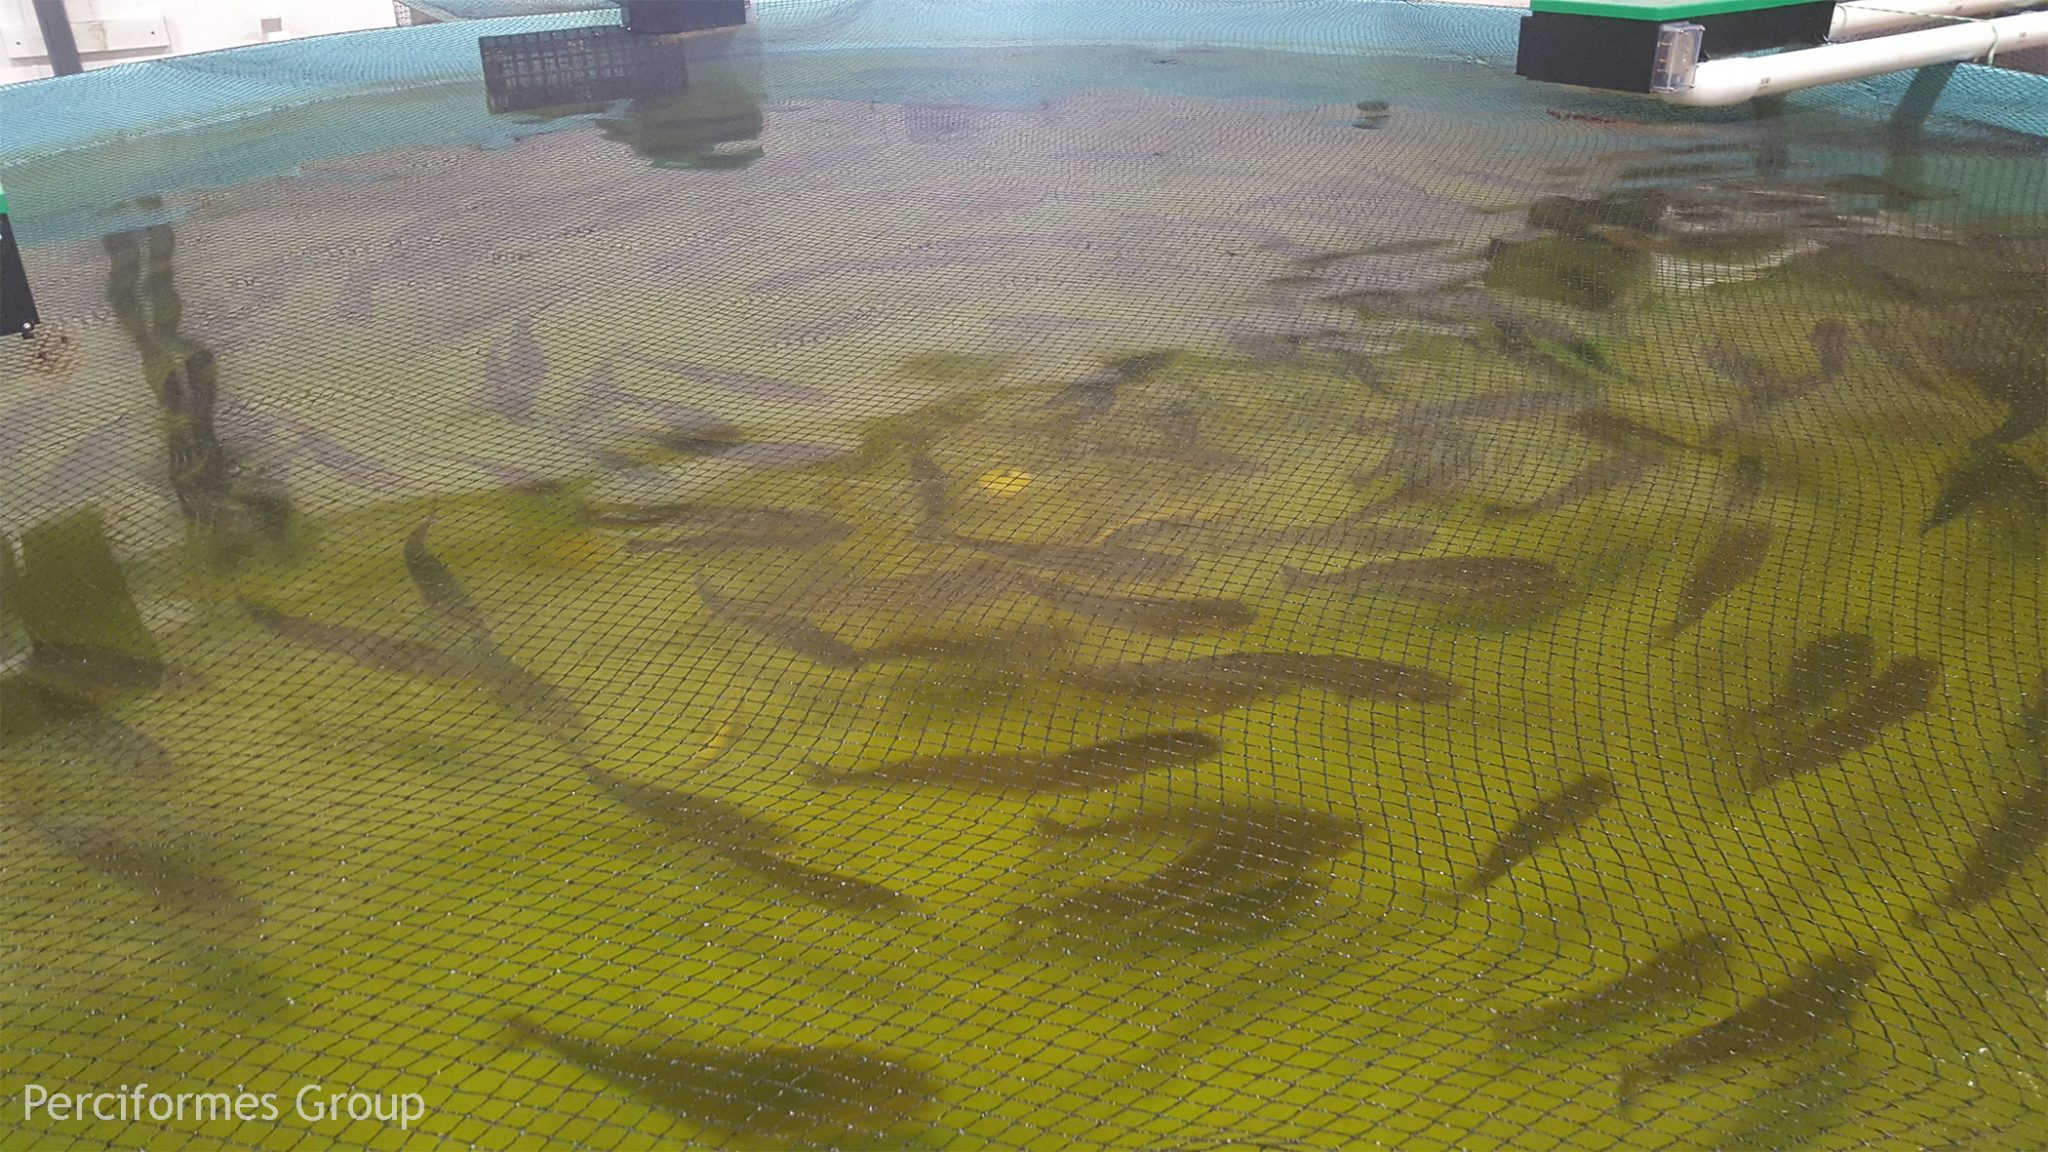 The Need for Aquaculture